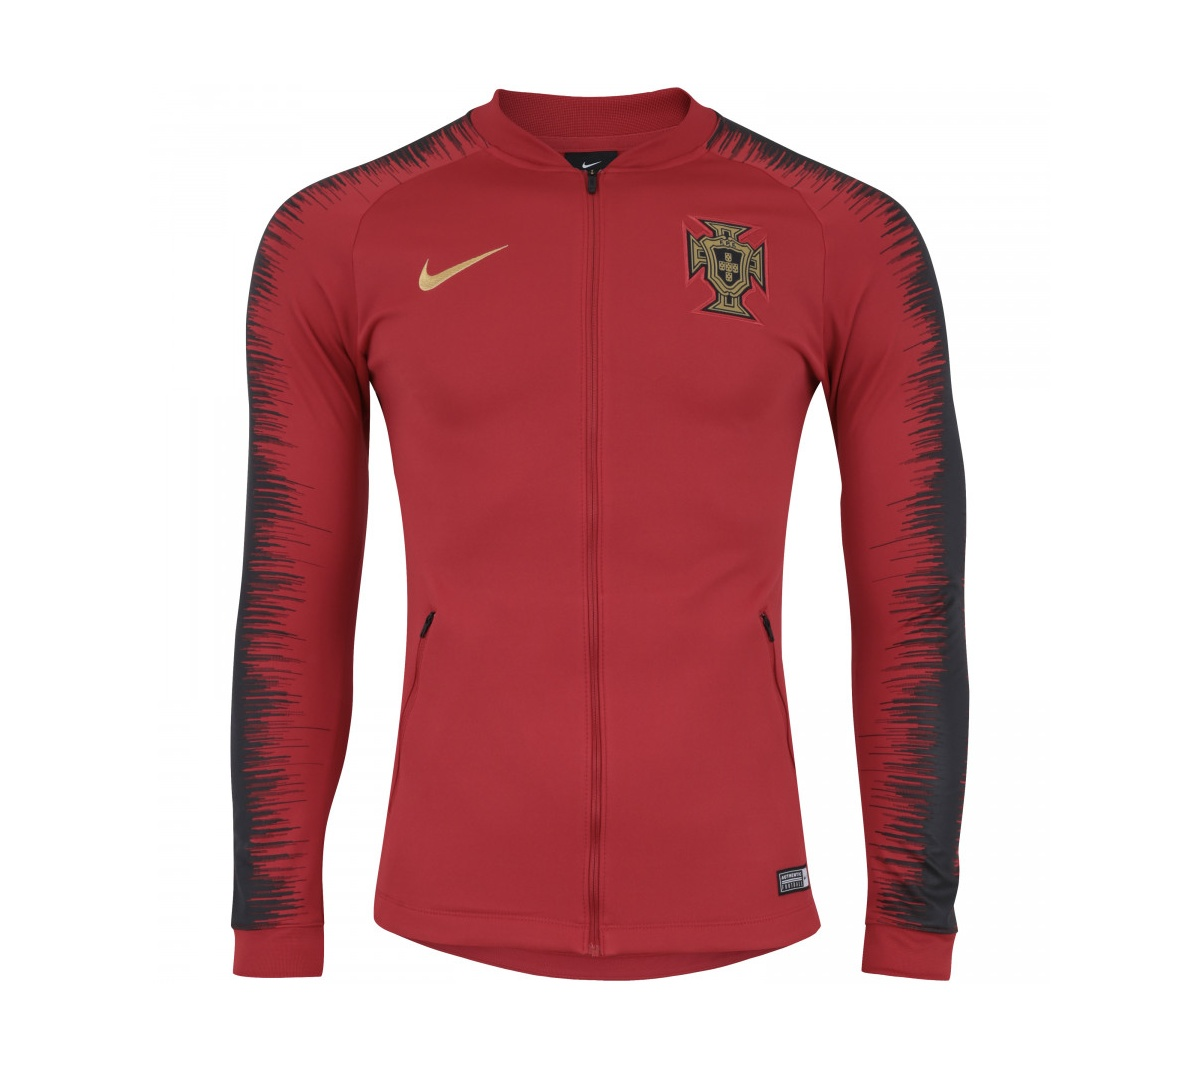 721d7fc5b3 Jaqueta Nike Portugal Anthem Adulto 2018 Jaqueta Nike Portugal Anthem  Adulto 2018 ...